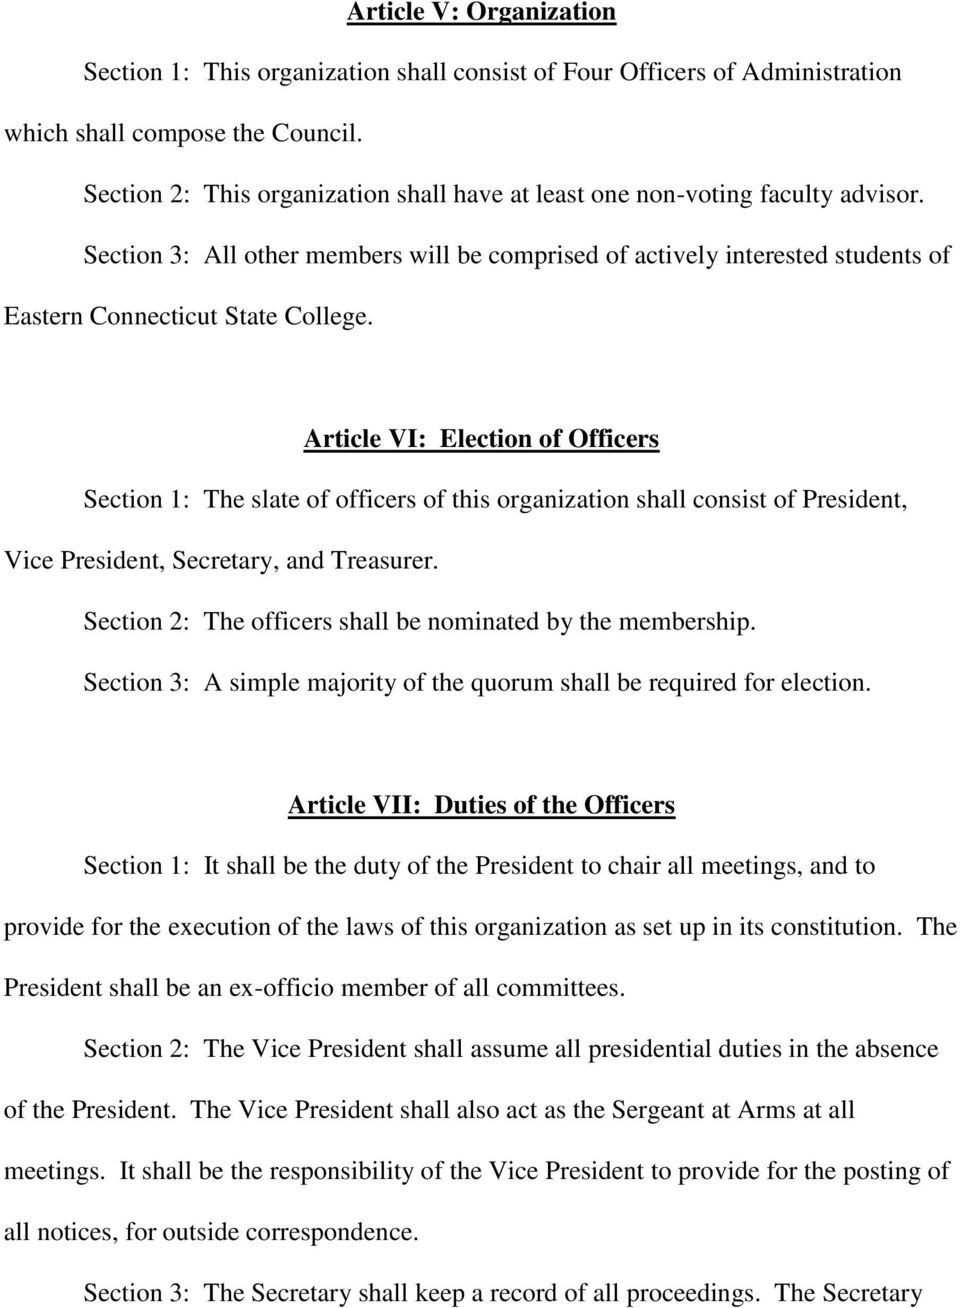 Article VI: Election of Officers Section 1: The slate of officers of this organization shall consist of President, Vice President, Secretary, and Treasurer.